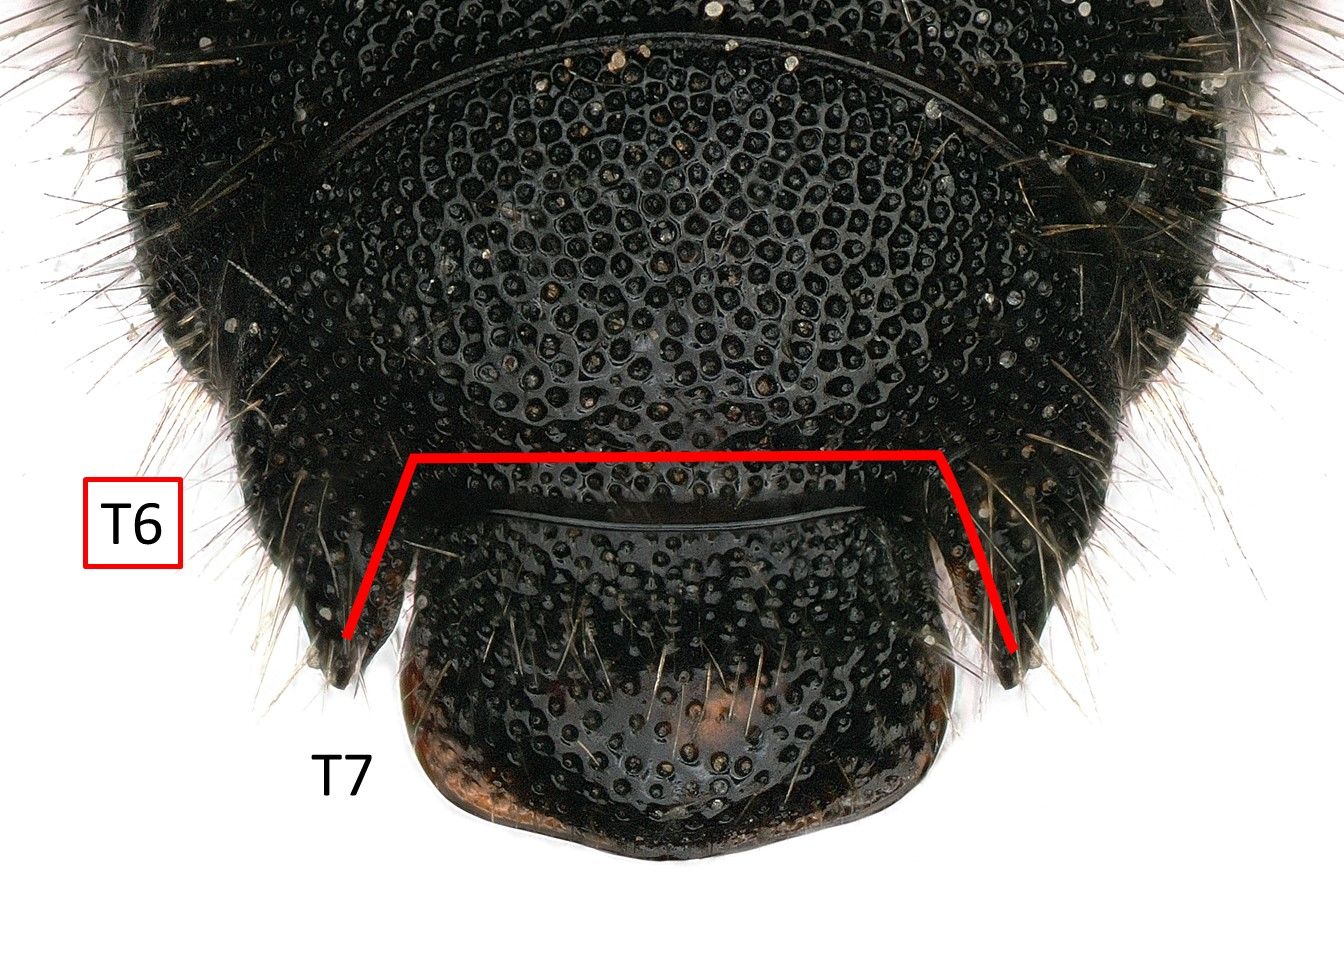 Fig 4. <em>Afroheriades primus</em> male T6 and T7.&nbsp;  Photo: C. Ritner